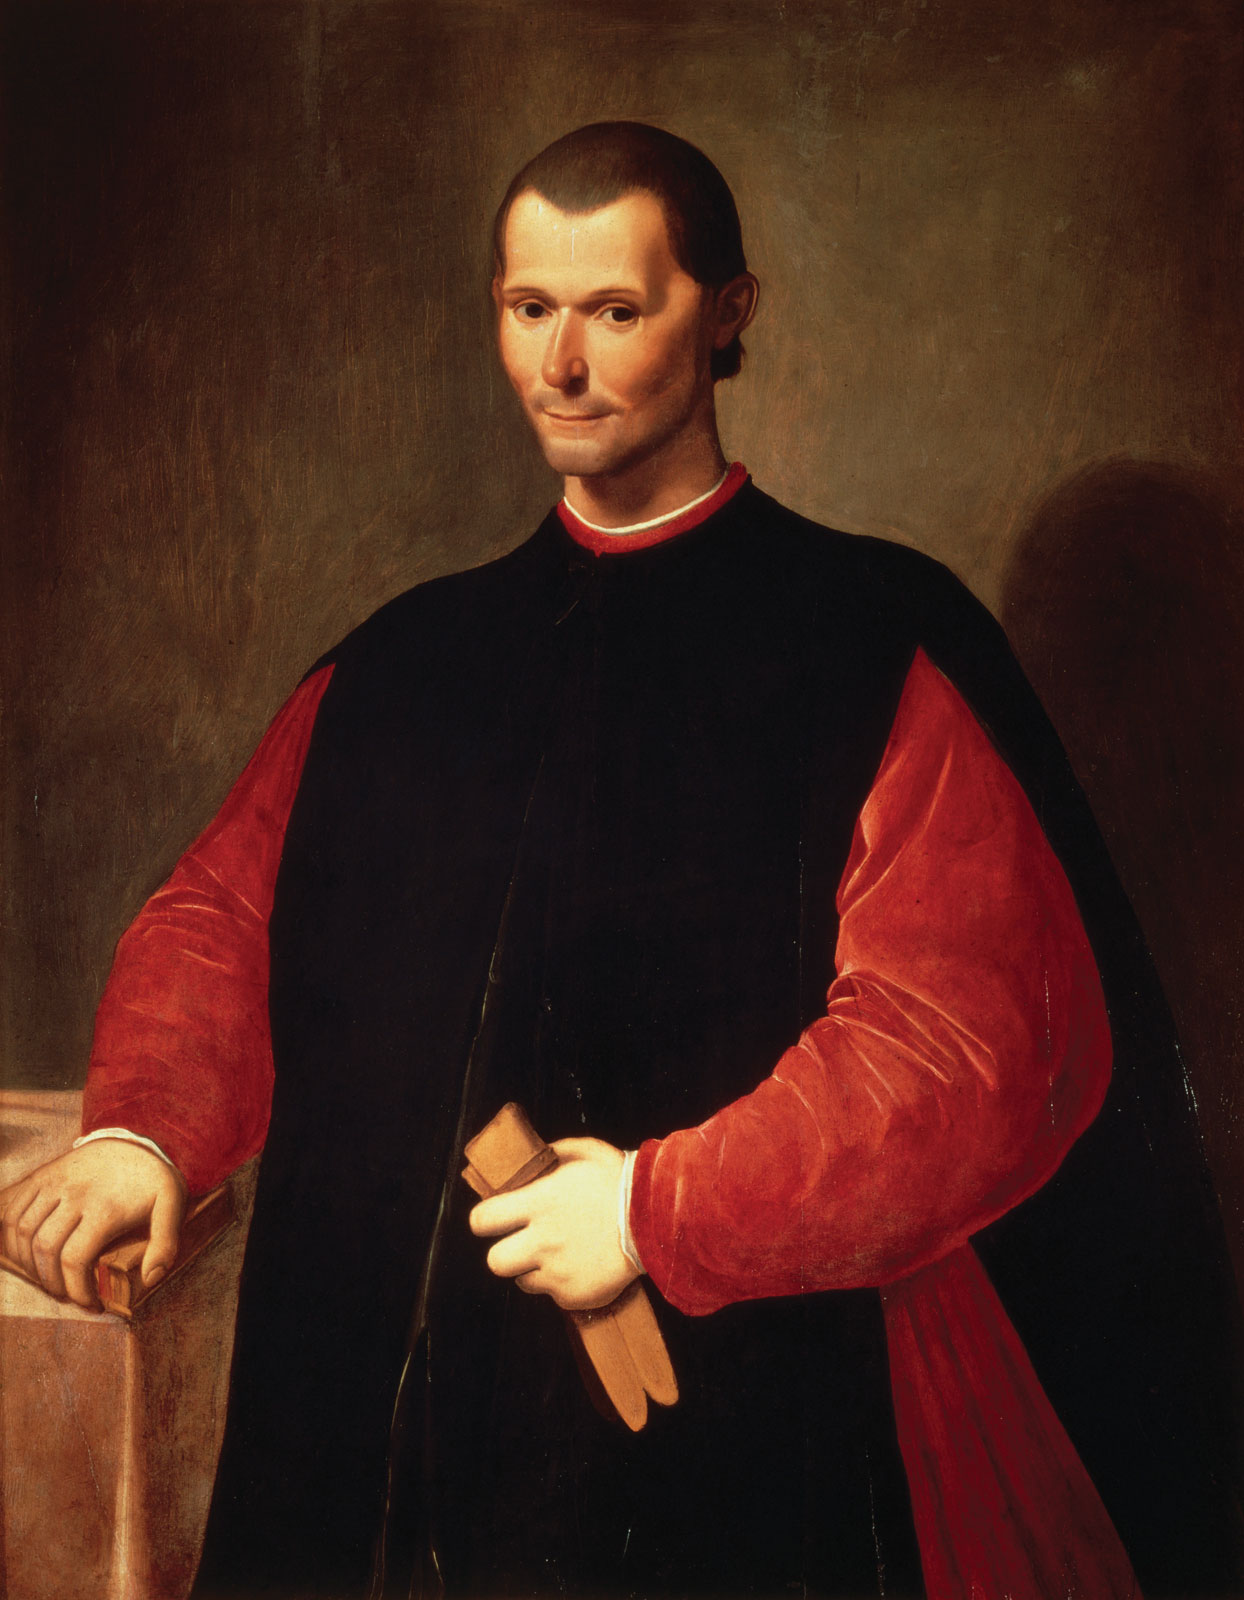 niccolo machiavelli  portrait of niccolo machiavelli by santi di tito jpg